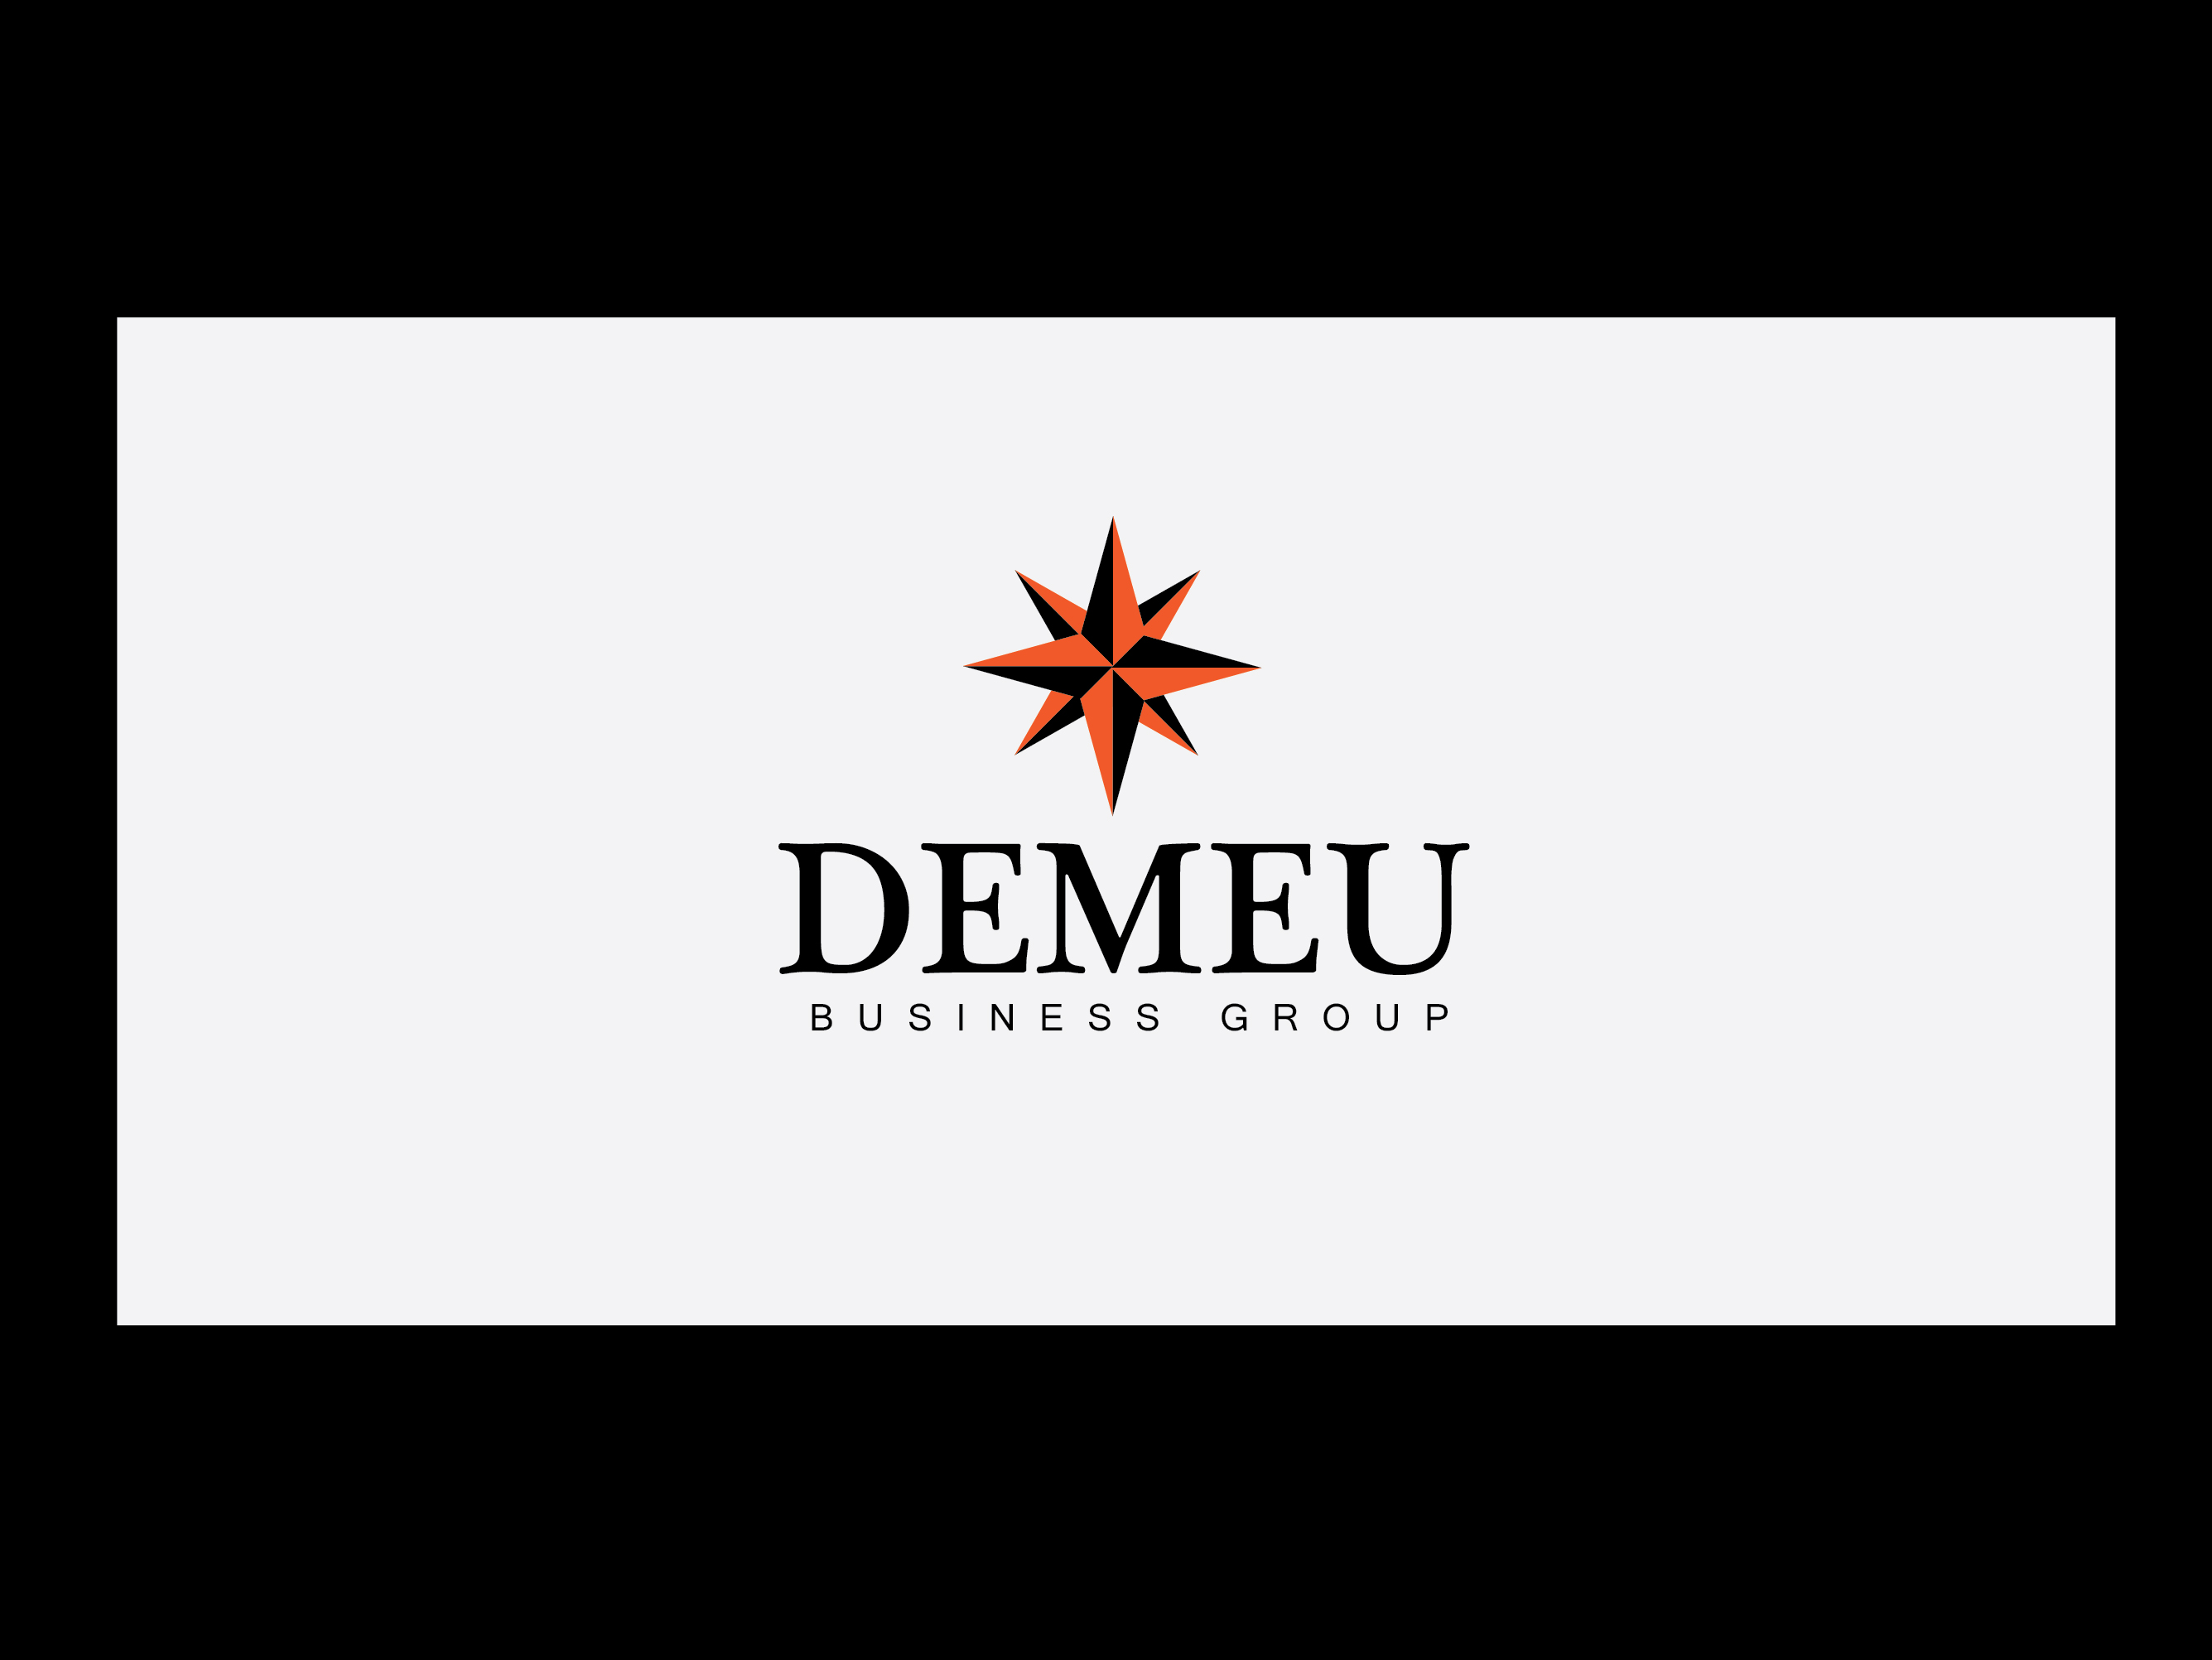 Logo Design by Kyaw Min Khaing - Entry No. 156 in the Logo Design Contest Captivating Logo Design for DEMEU Business Group.